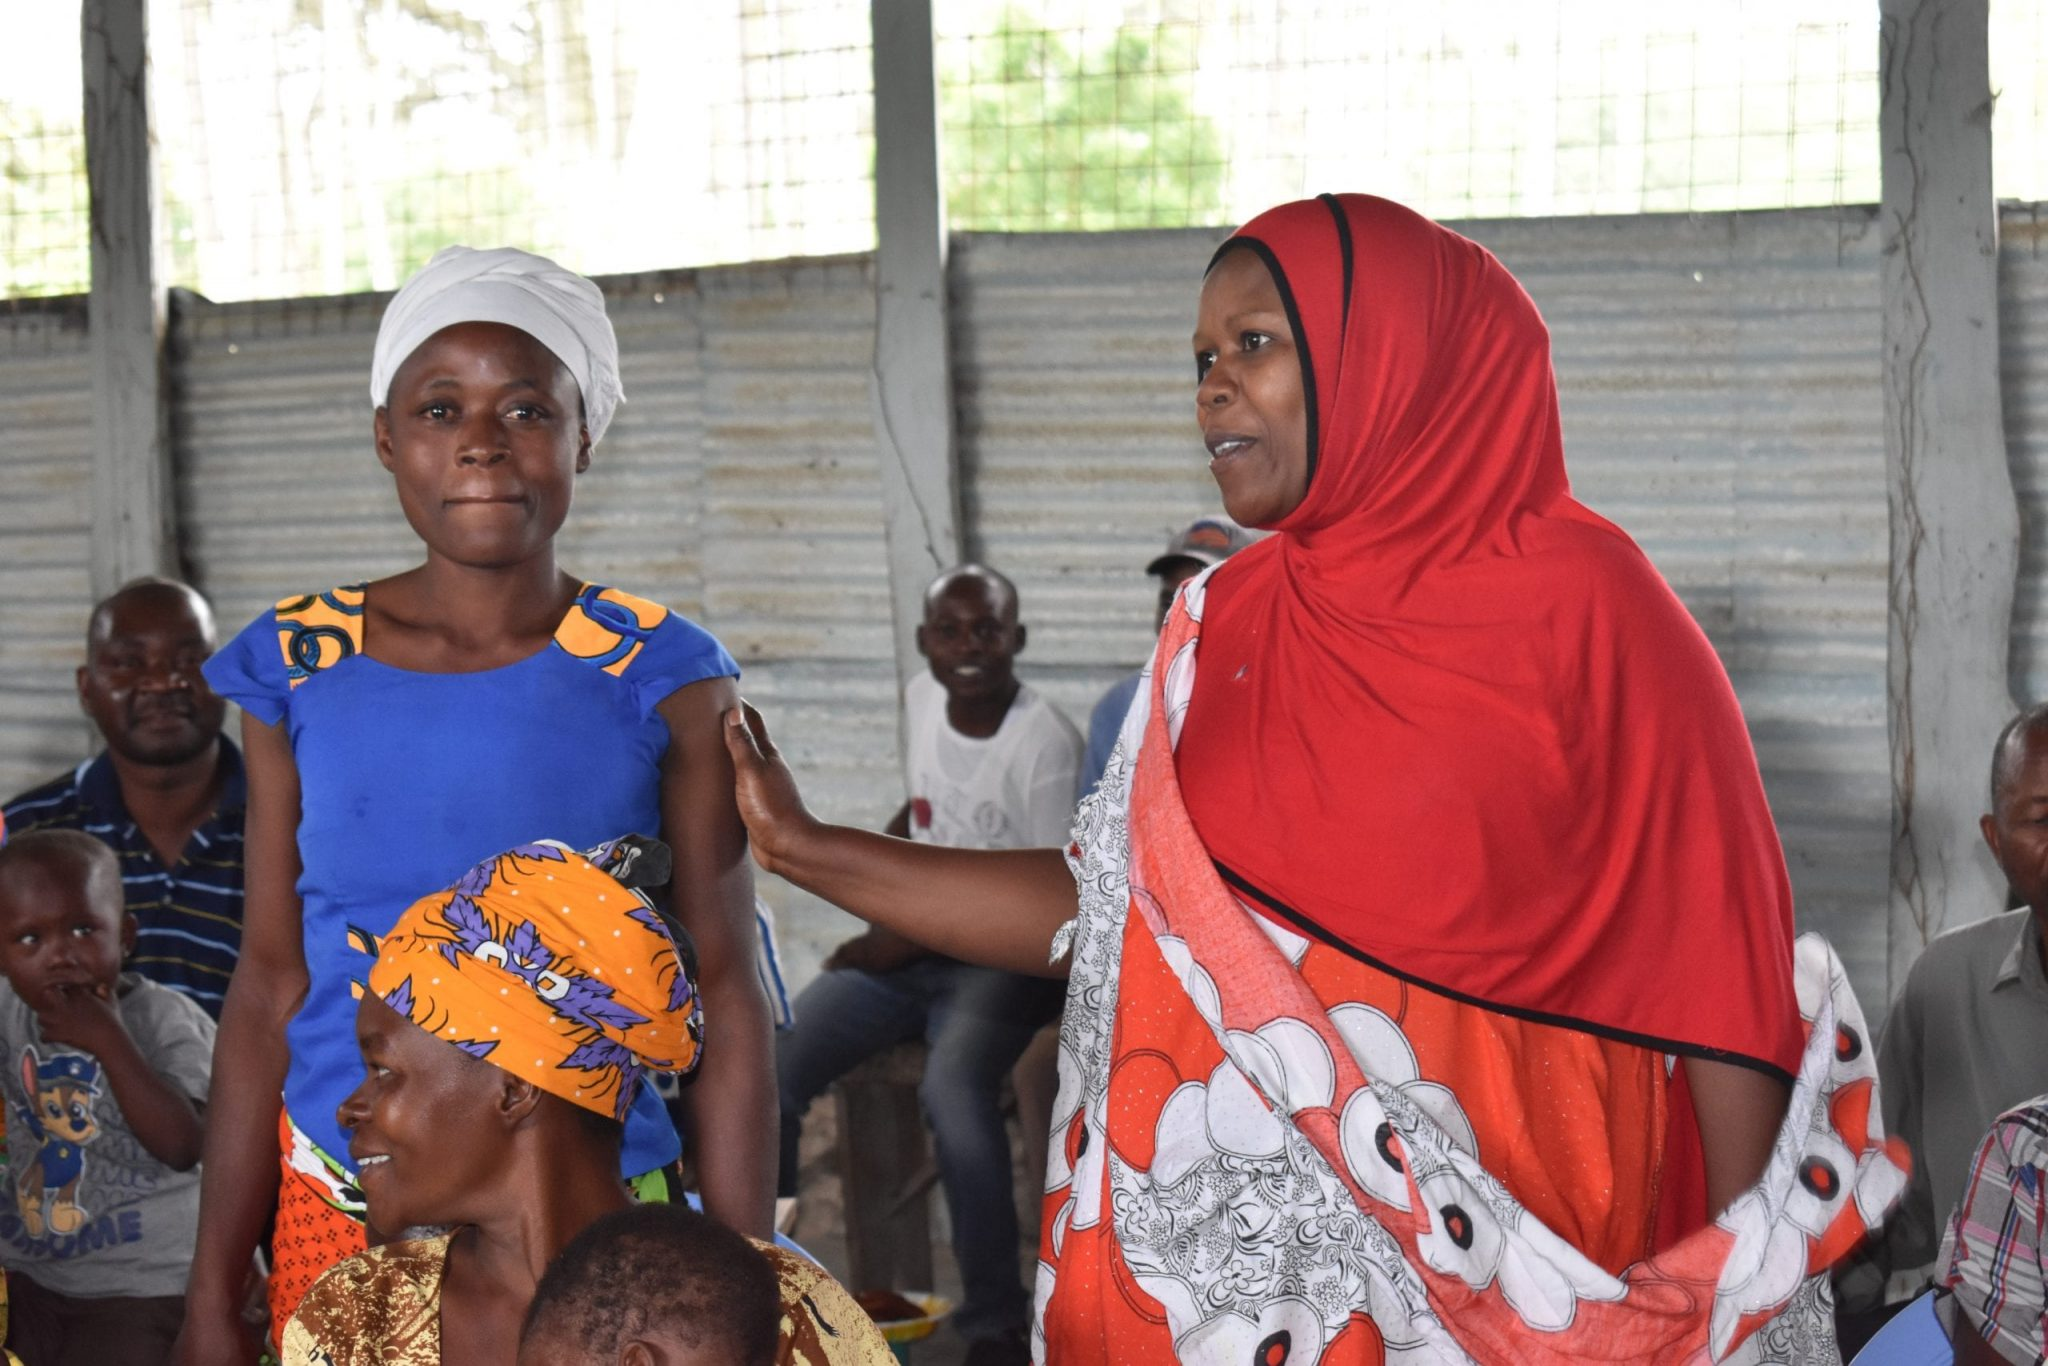 Two Kenyan women standing up with a group of others seated around them.